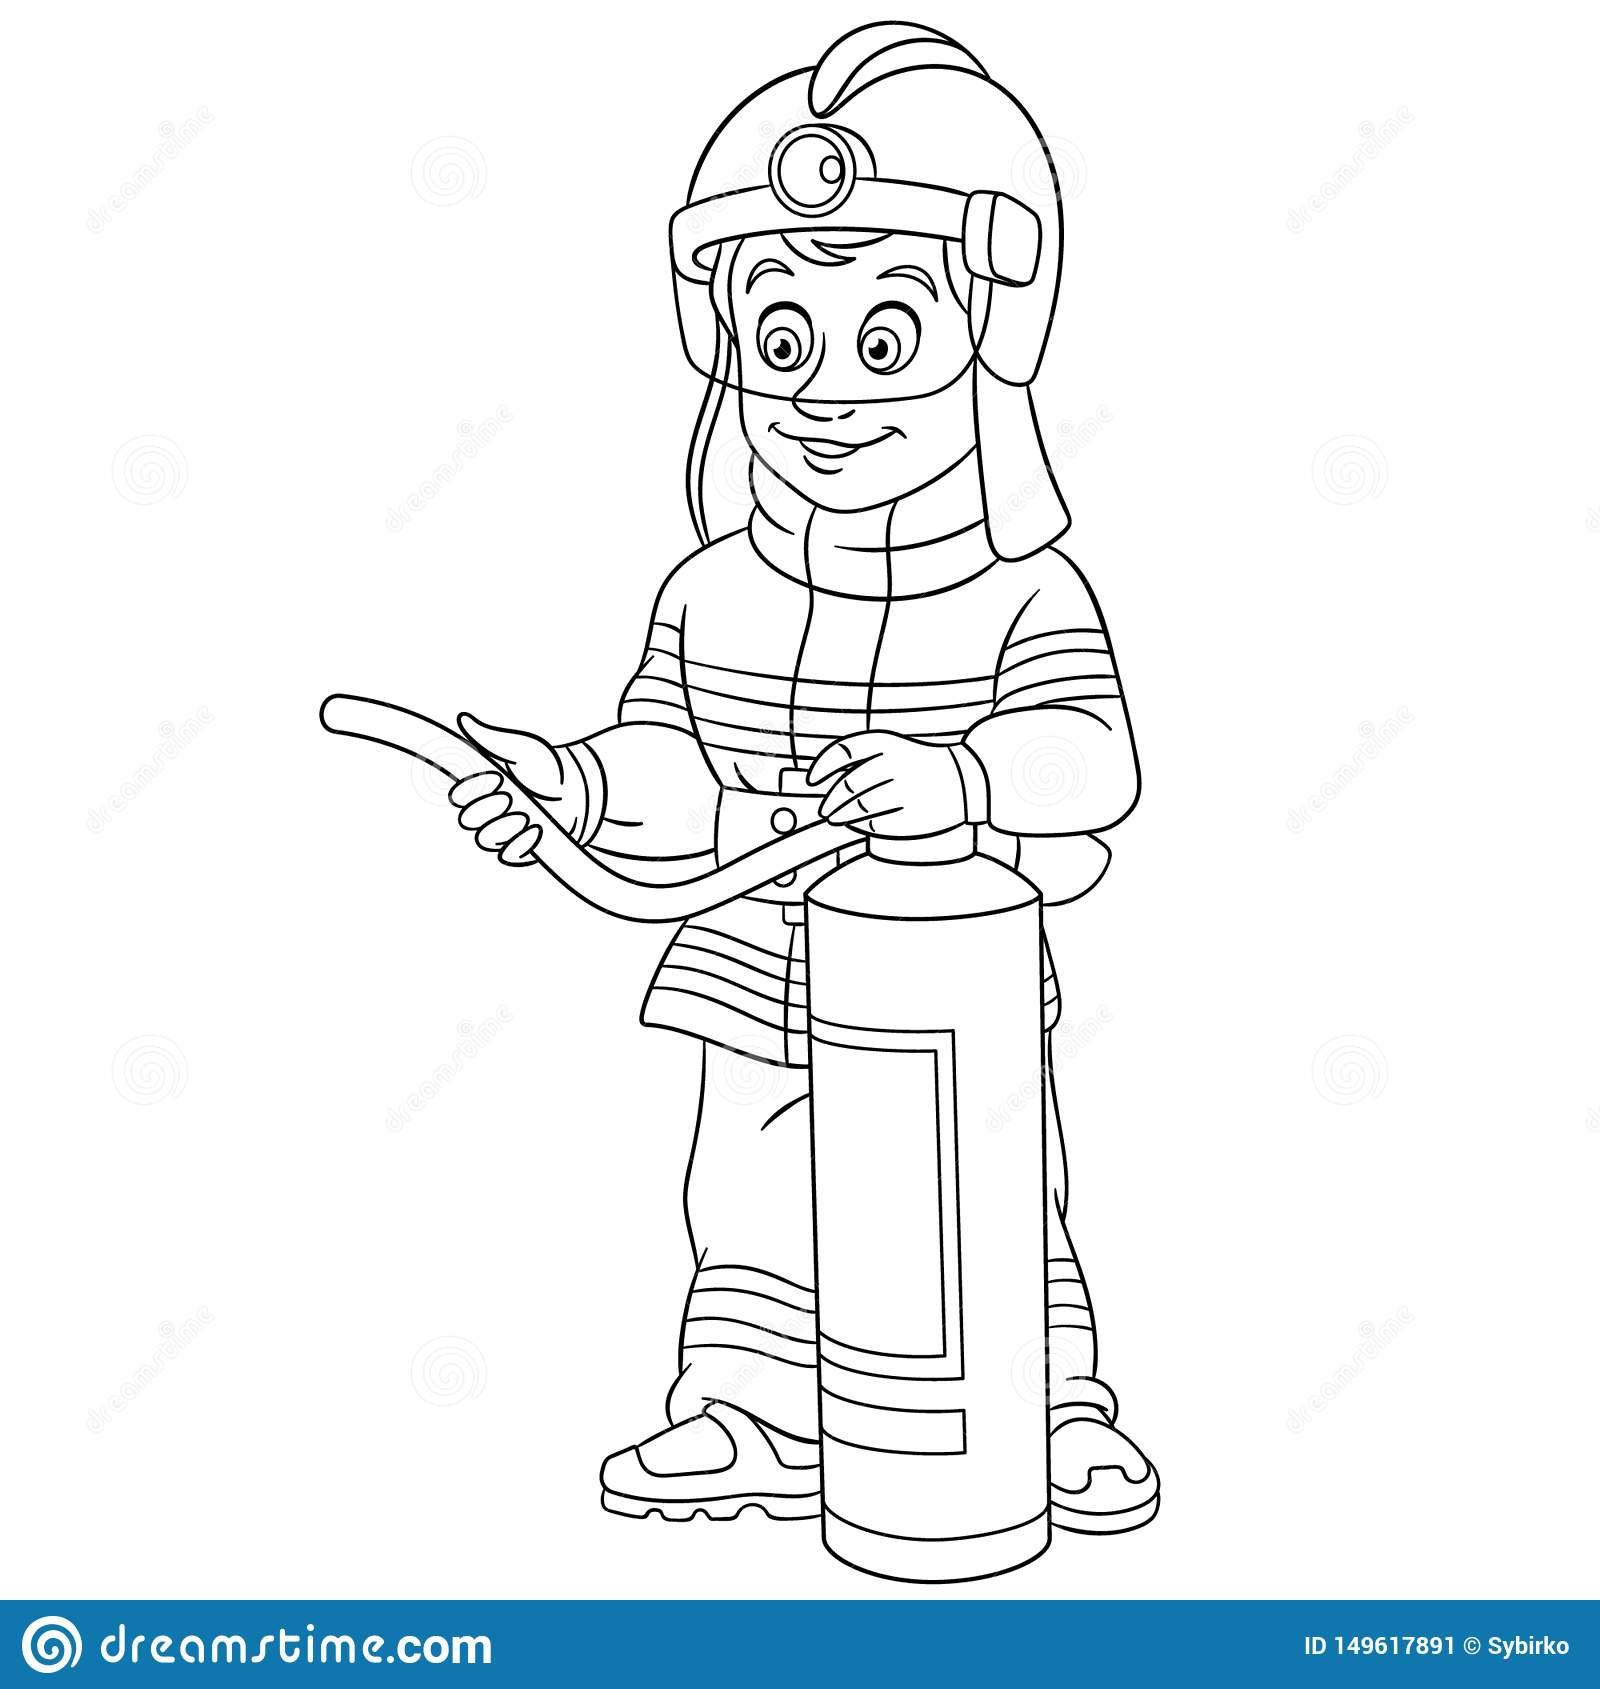 Coloring Page With Fire Man Fireman Firefighter Stock Vector ...